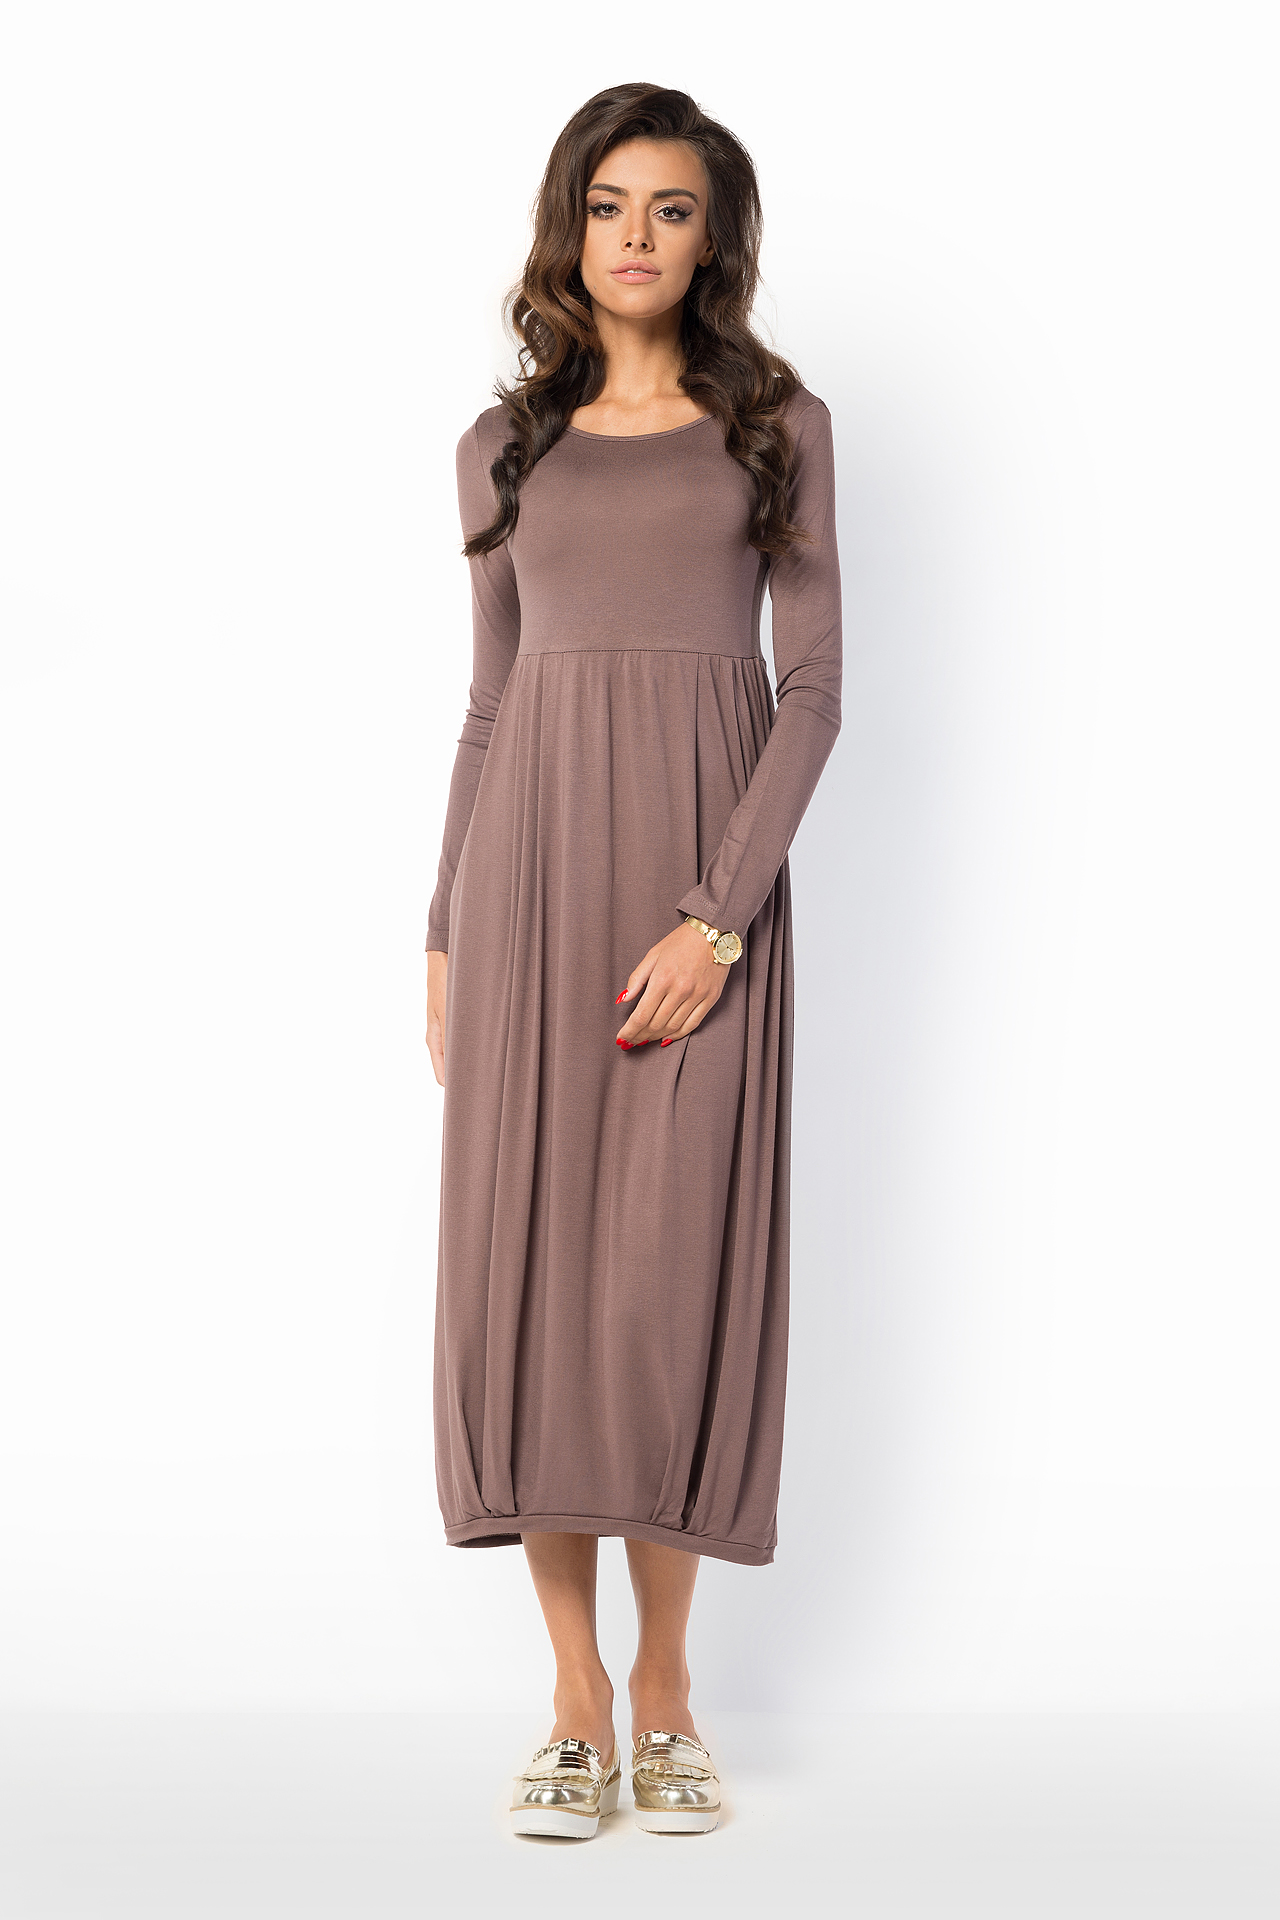 Ladies Loose Fit-and-Flare Crew Neck Long Sleeve Tunic Tea Length Dress FM37